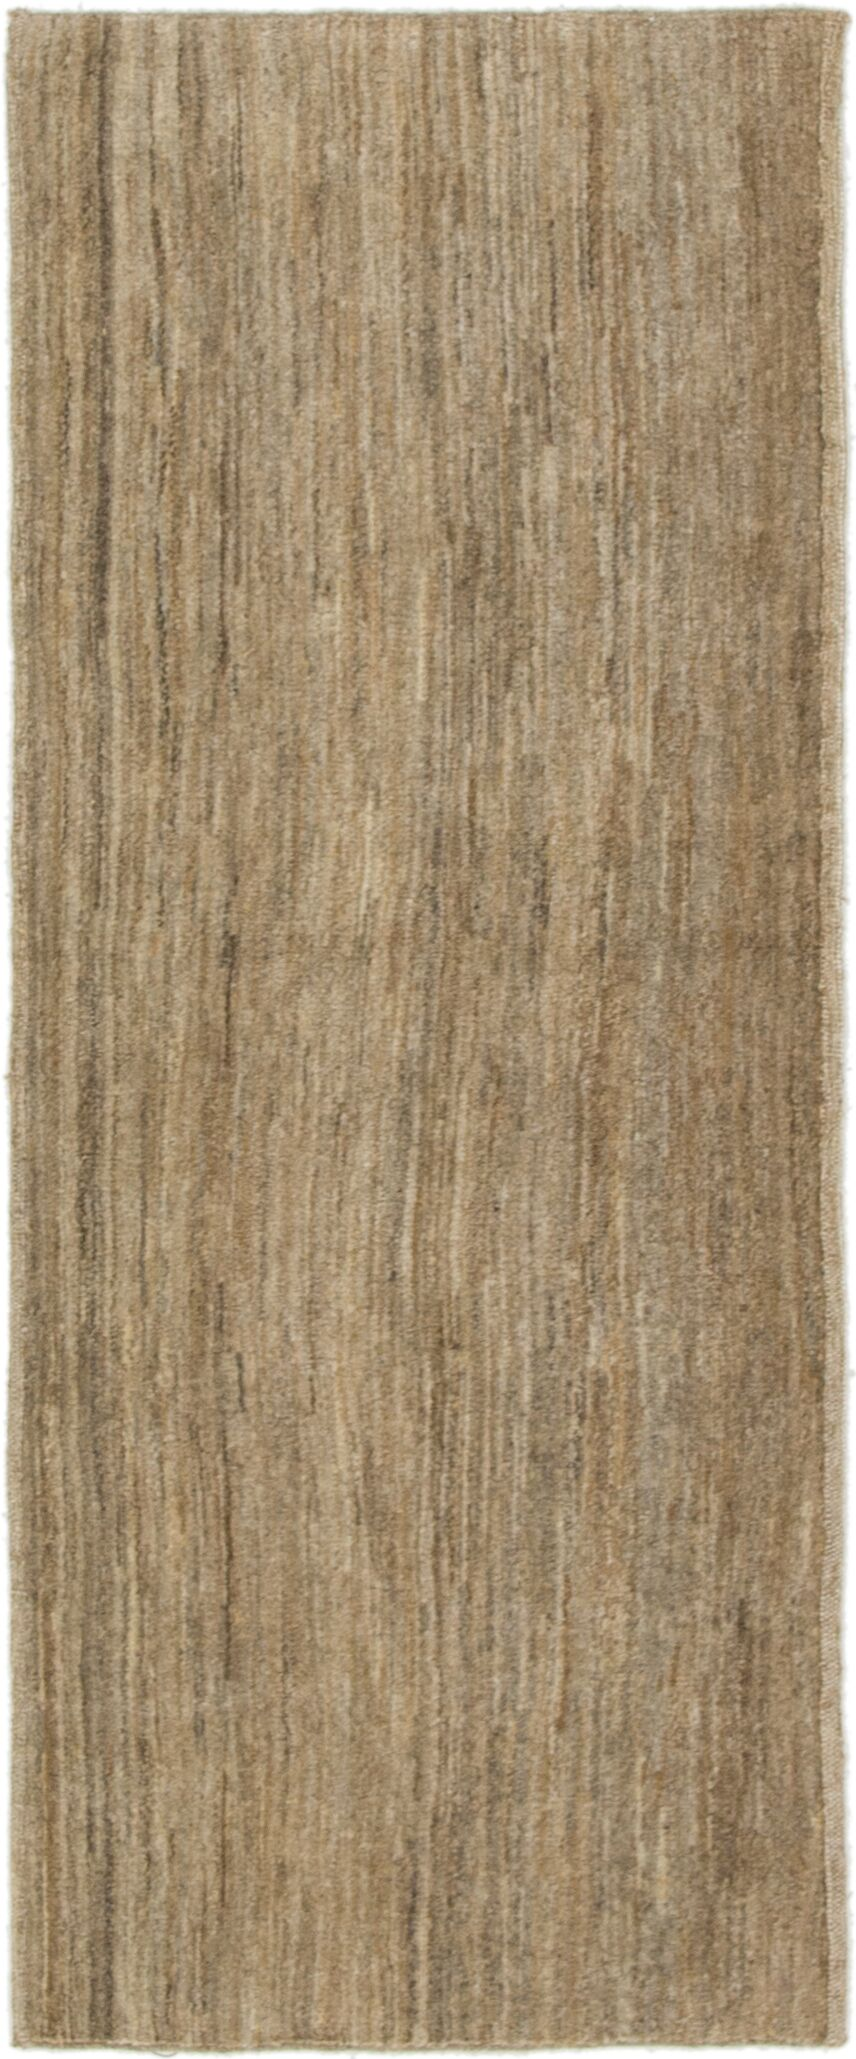 One-of-a-Kind Didcot Hand-Knotted Runner 2' x 5' Wool Light Brown Area Rug